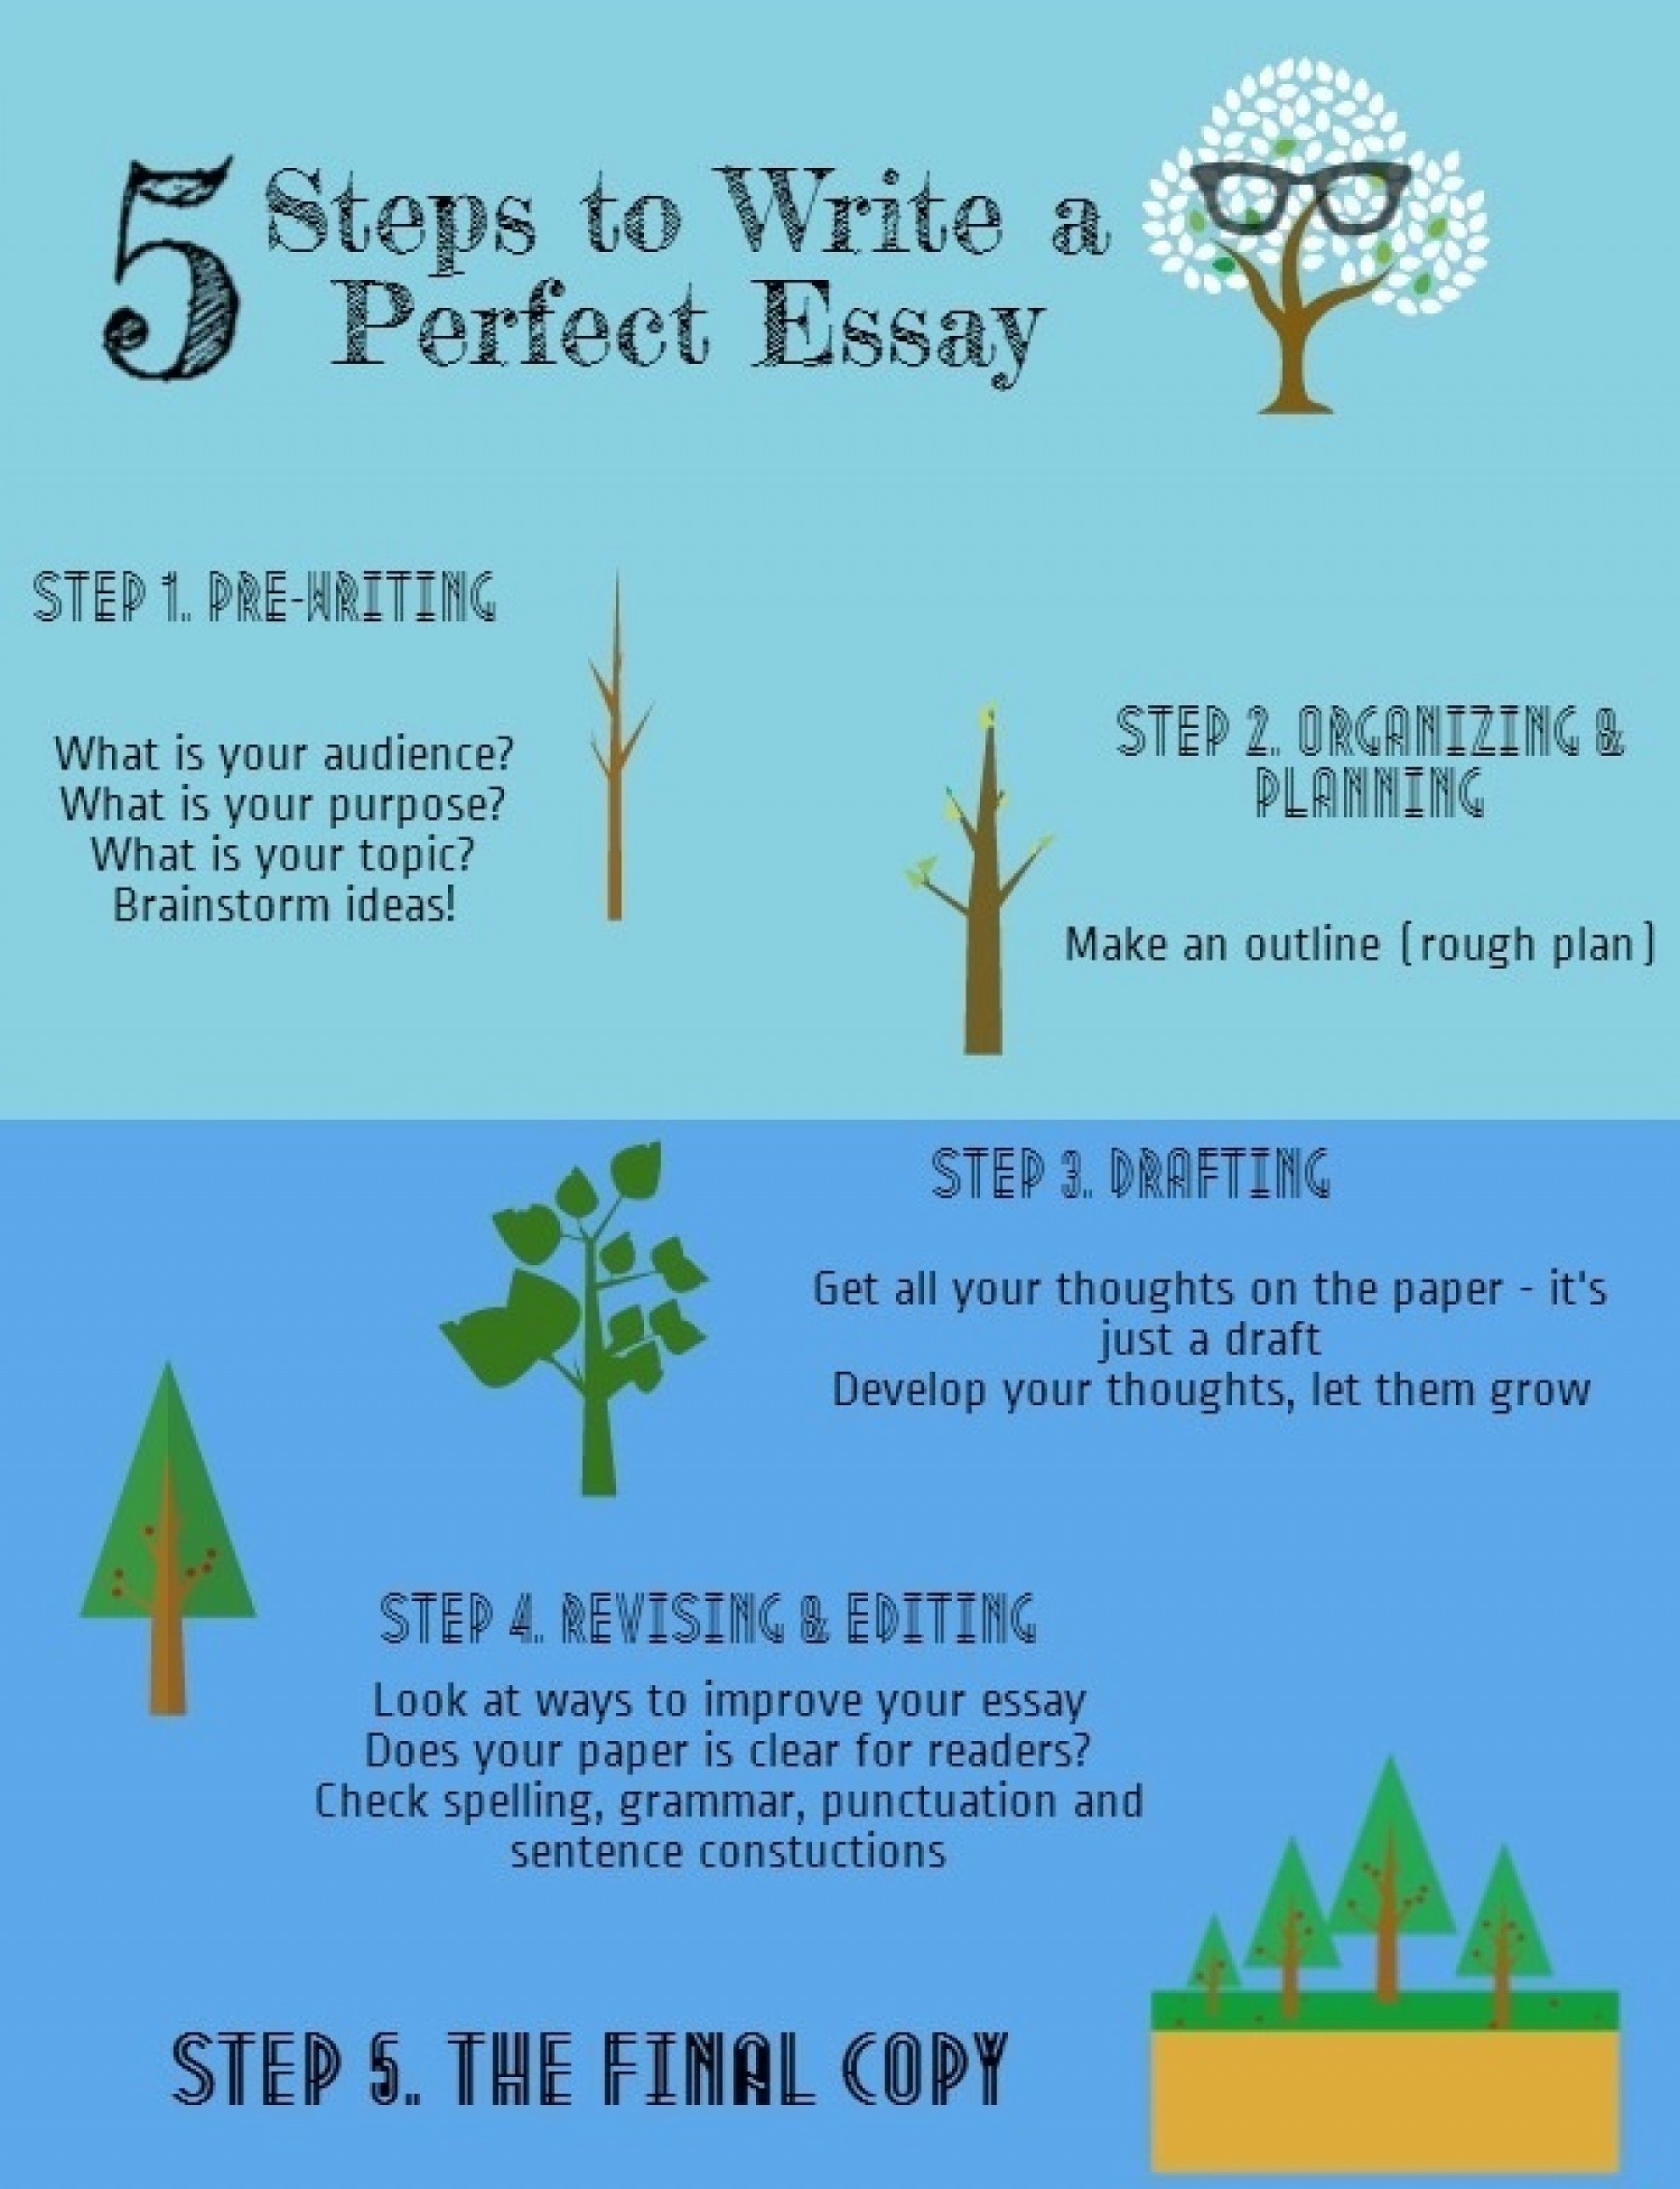 003 Steps To Write An Essay Perfect 547da311ad70a W1500 Staggering In Telugu Mla Format Pdf 1920